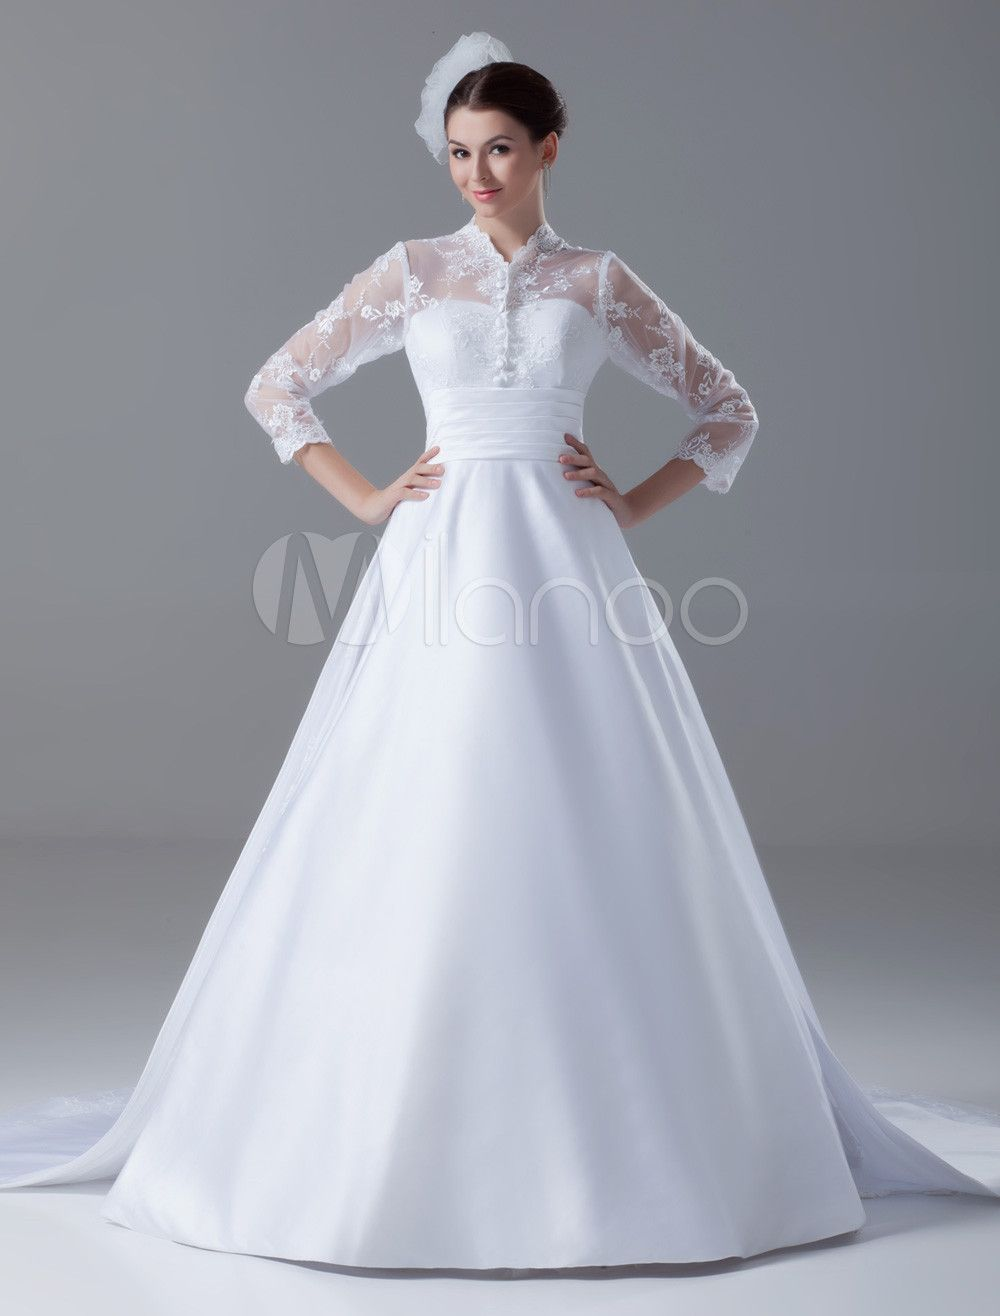 1940s Style Wedding Dresses Shoes Accessories White Ball Gowns Bridal Lace Ball Gown Wedding Dress